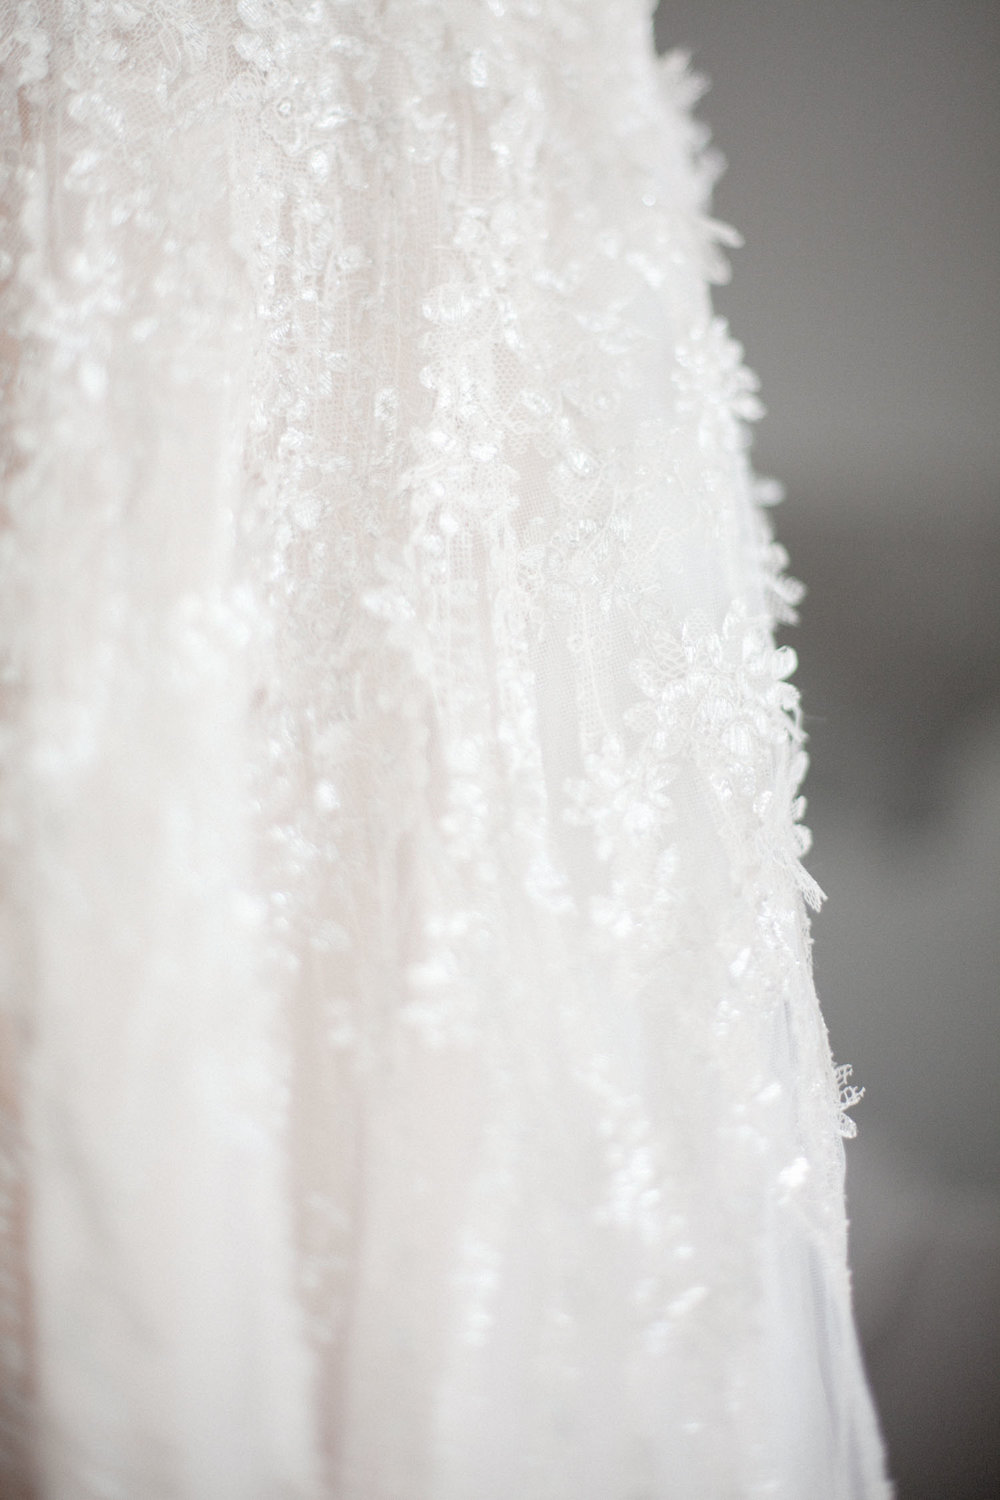 Detail photos of Brides stunning wedding dress